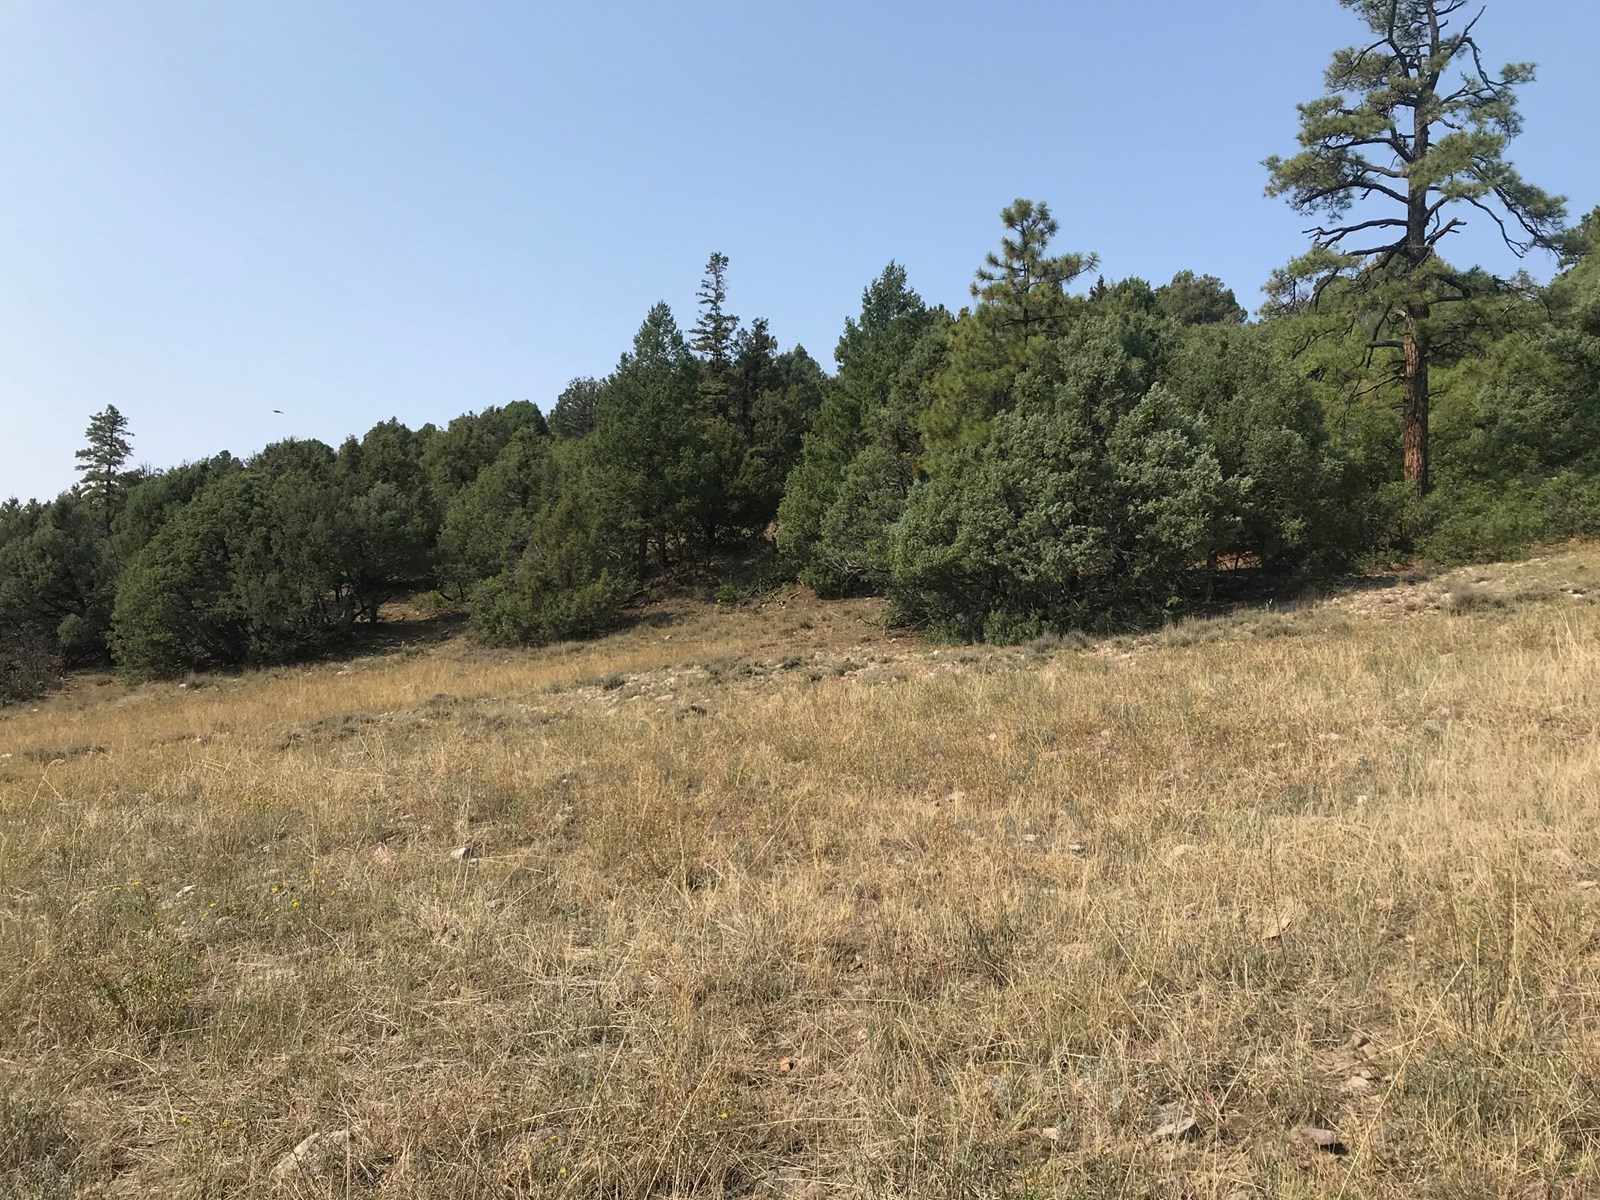 Recreational Land for Sale near Chama NM with Southern Exp